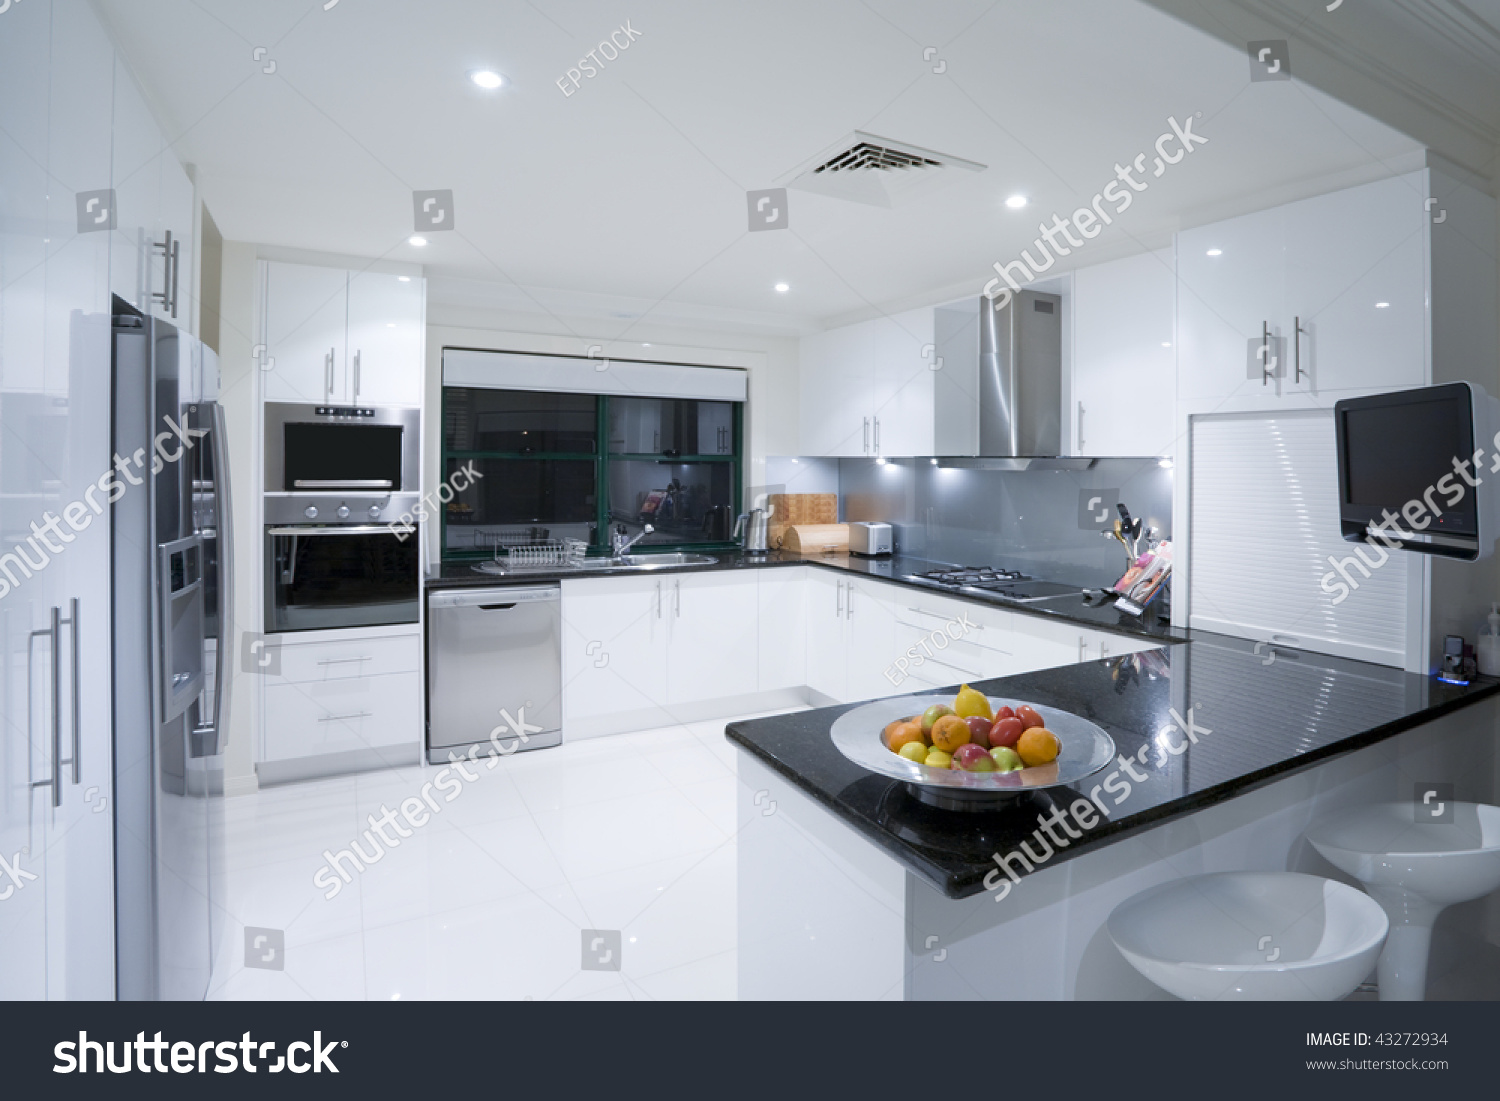 Modern kitchen luxury australian mansion stock photo for Luxury modern kitchen